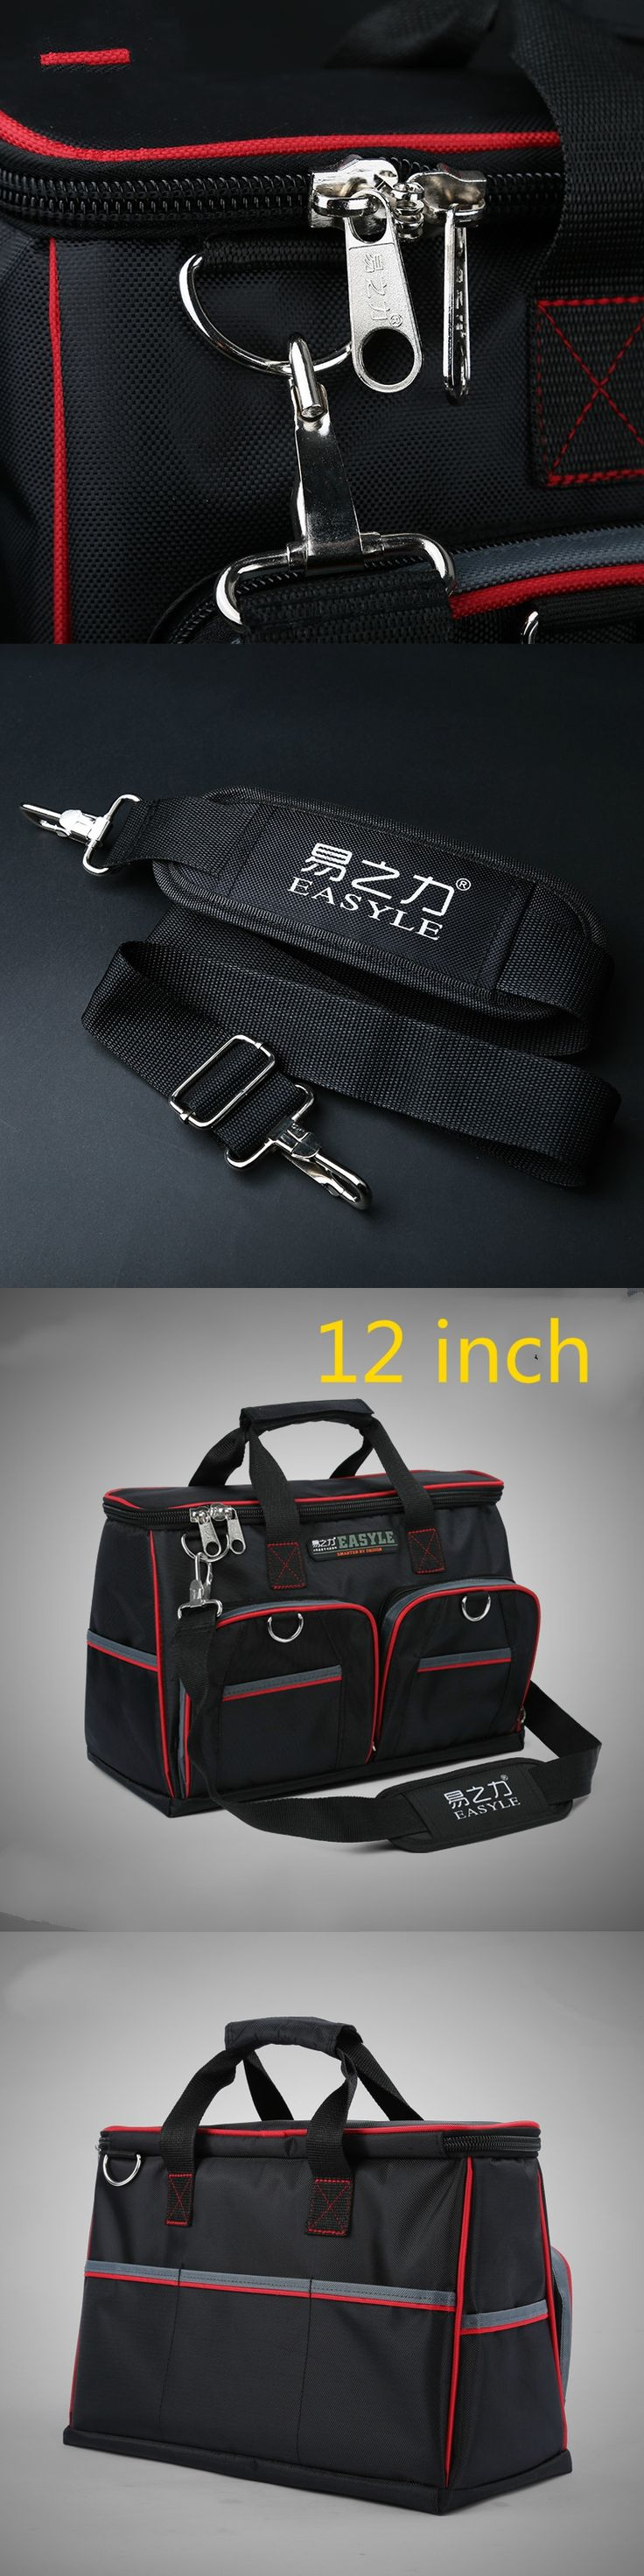 12 Inch Appliances Electrical Repair Bag After Sales Tool Bag Oxford Cloth Double Canvas Thickening Tool Kit